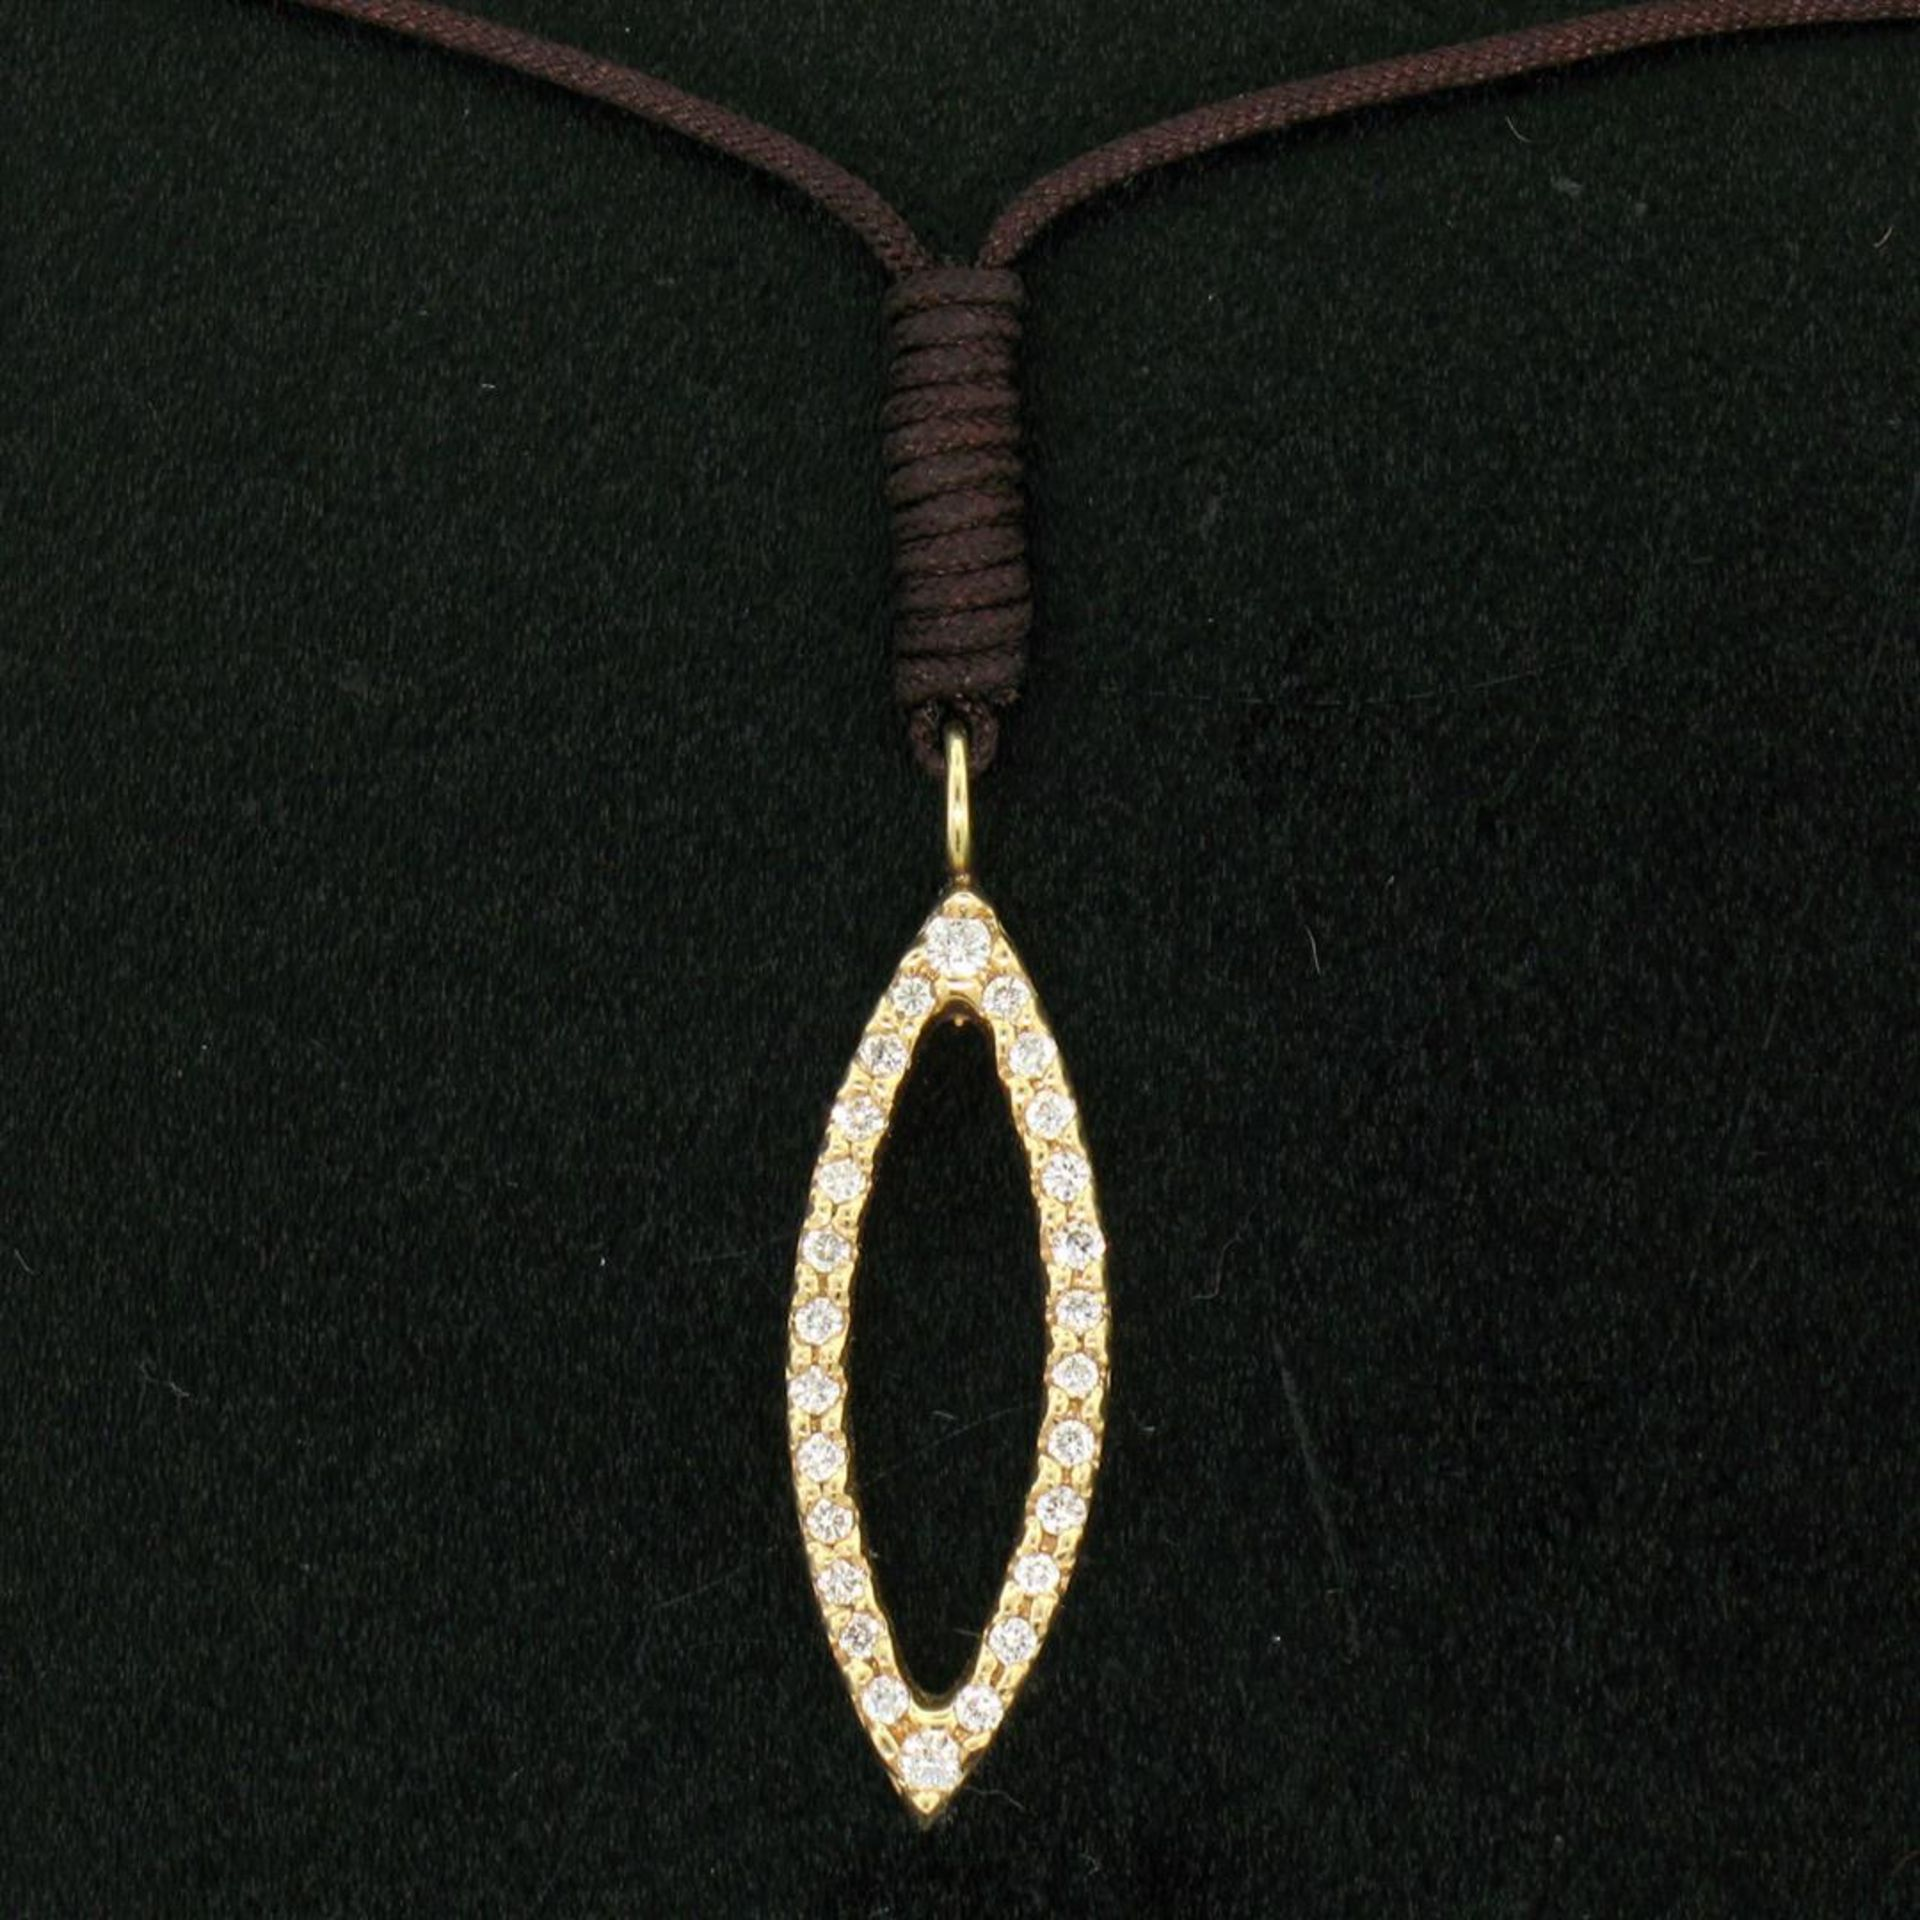 """14k Rose Gold 0.30ctw Diamond Marquise Pendant Necklace w/ 16"""" Brown Cord - Image 3 of 7"""